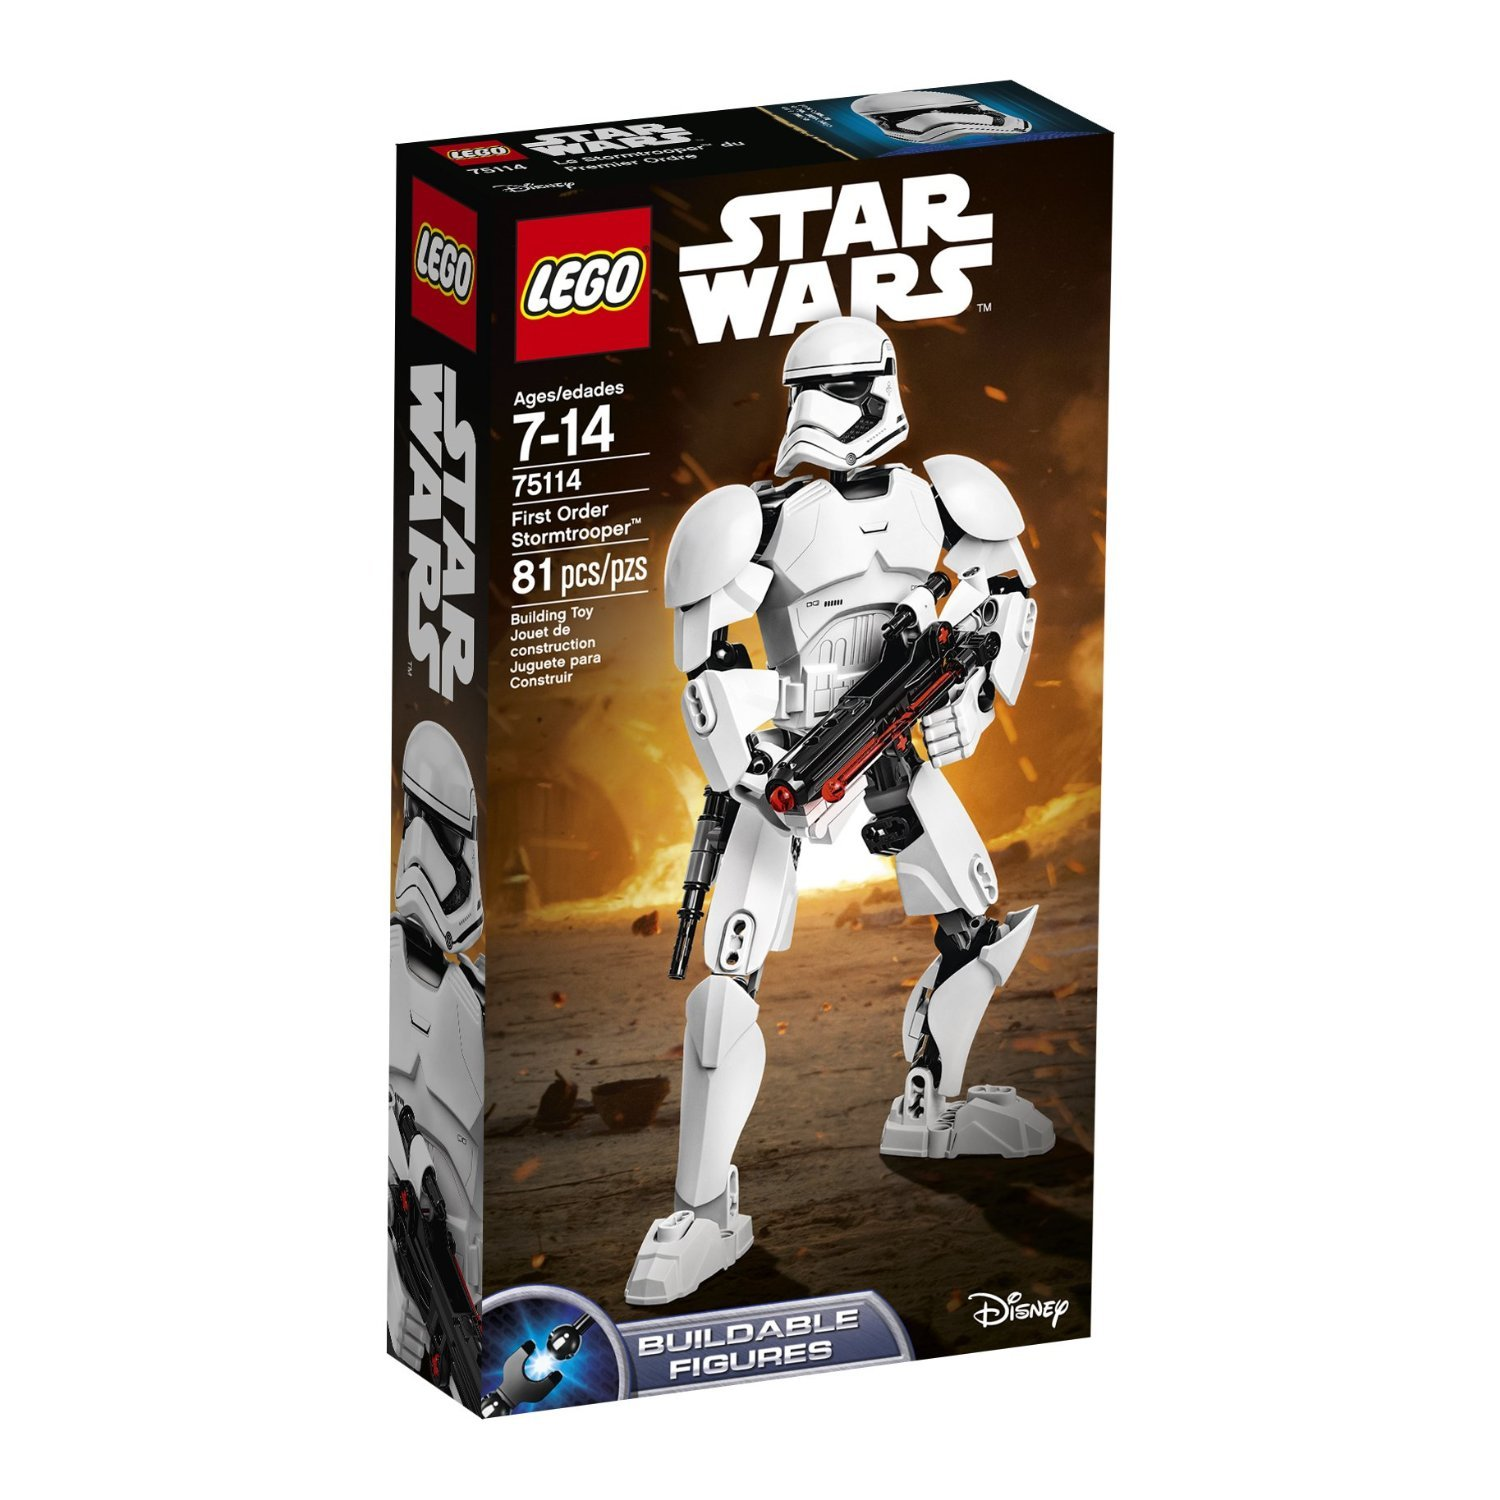 81 Pieces, First Order Stormtrooper Figure Building Toy   B01N07AXJW